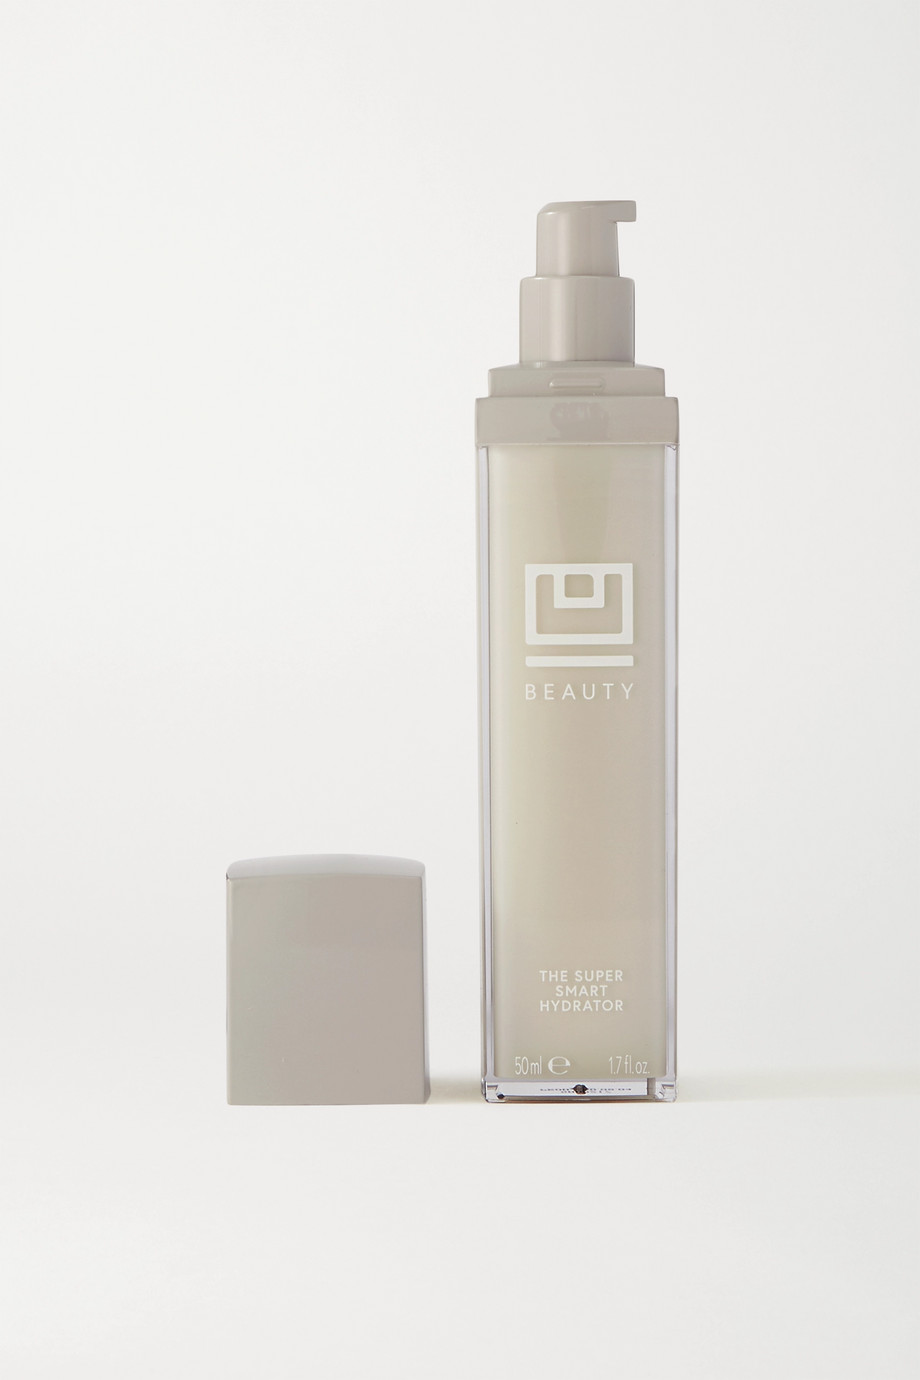 U BEAUTY The Super Smart Hydrator, 50ml